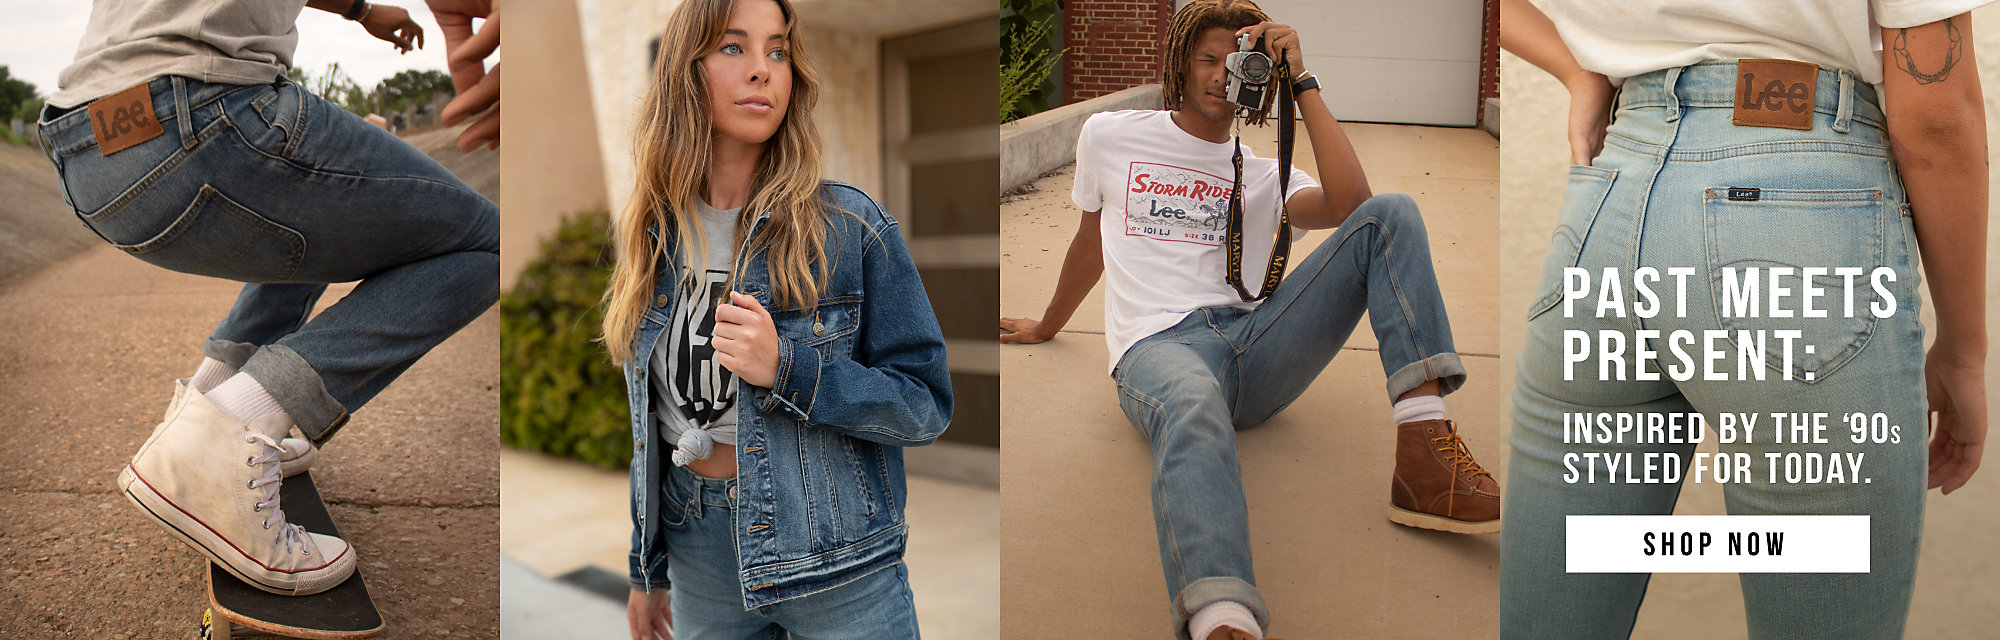 Past Meets Present: Inspired by the '90s, Styled for Today